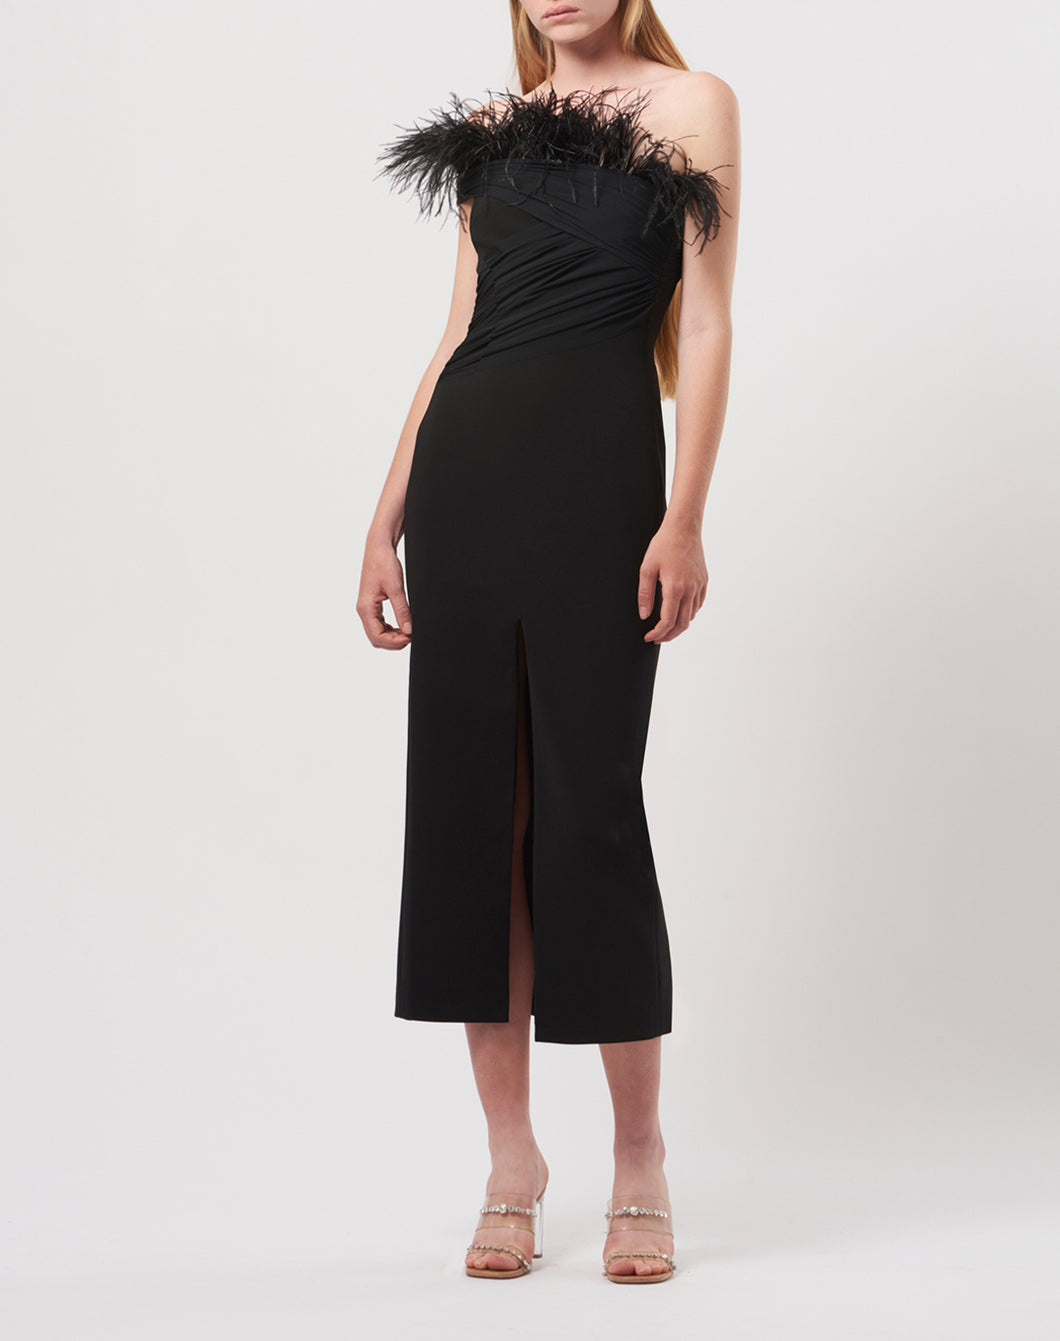 Feather and net midi dress